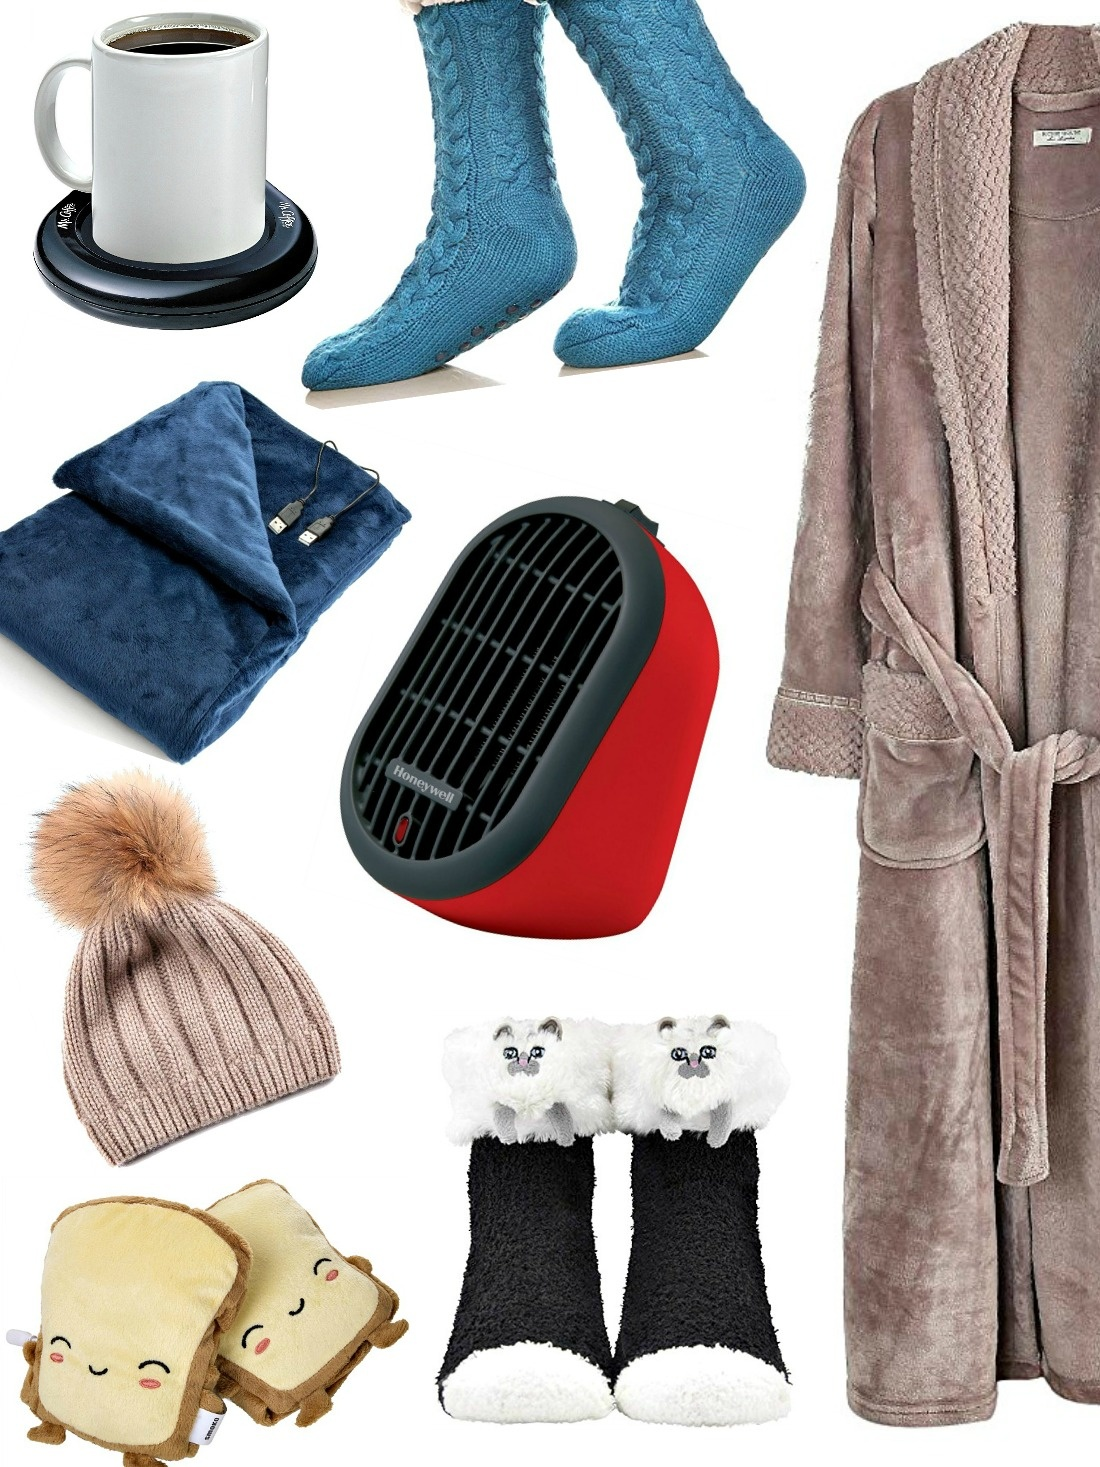 Looking for the best cozy gifts for her this holiday season? Take a look at these hand-picked items that will be sure to keep her feeling warm and toasty!